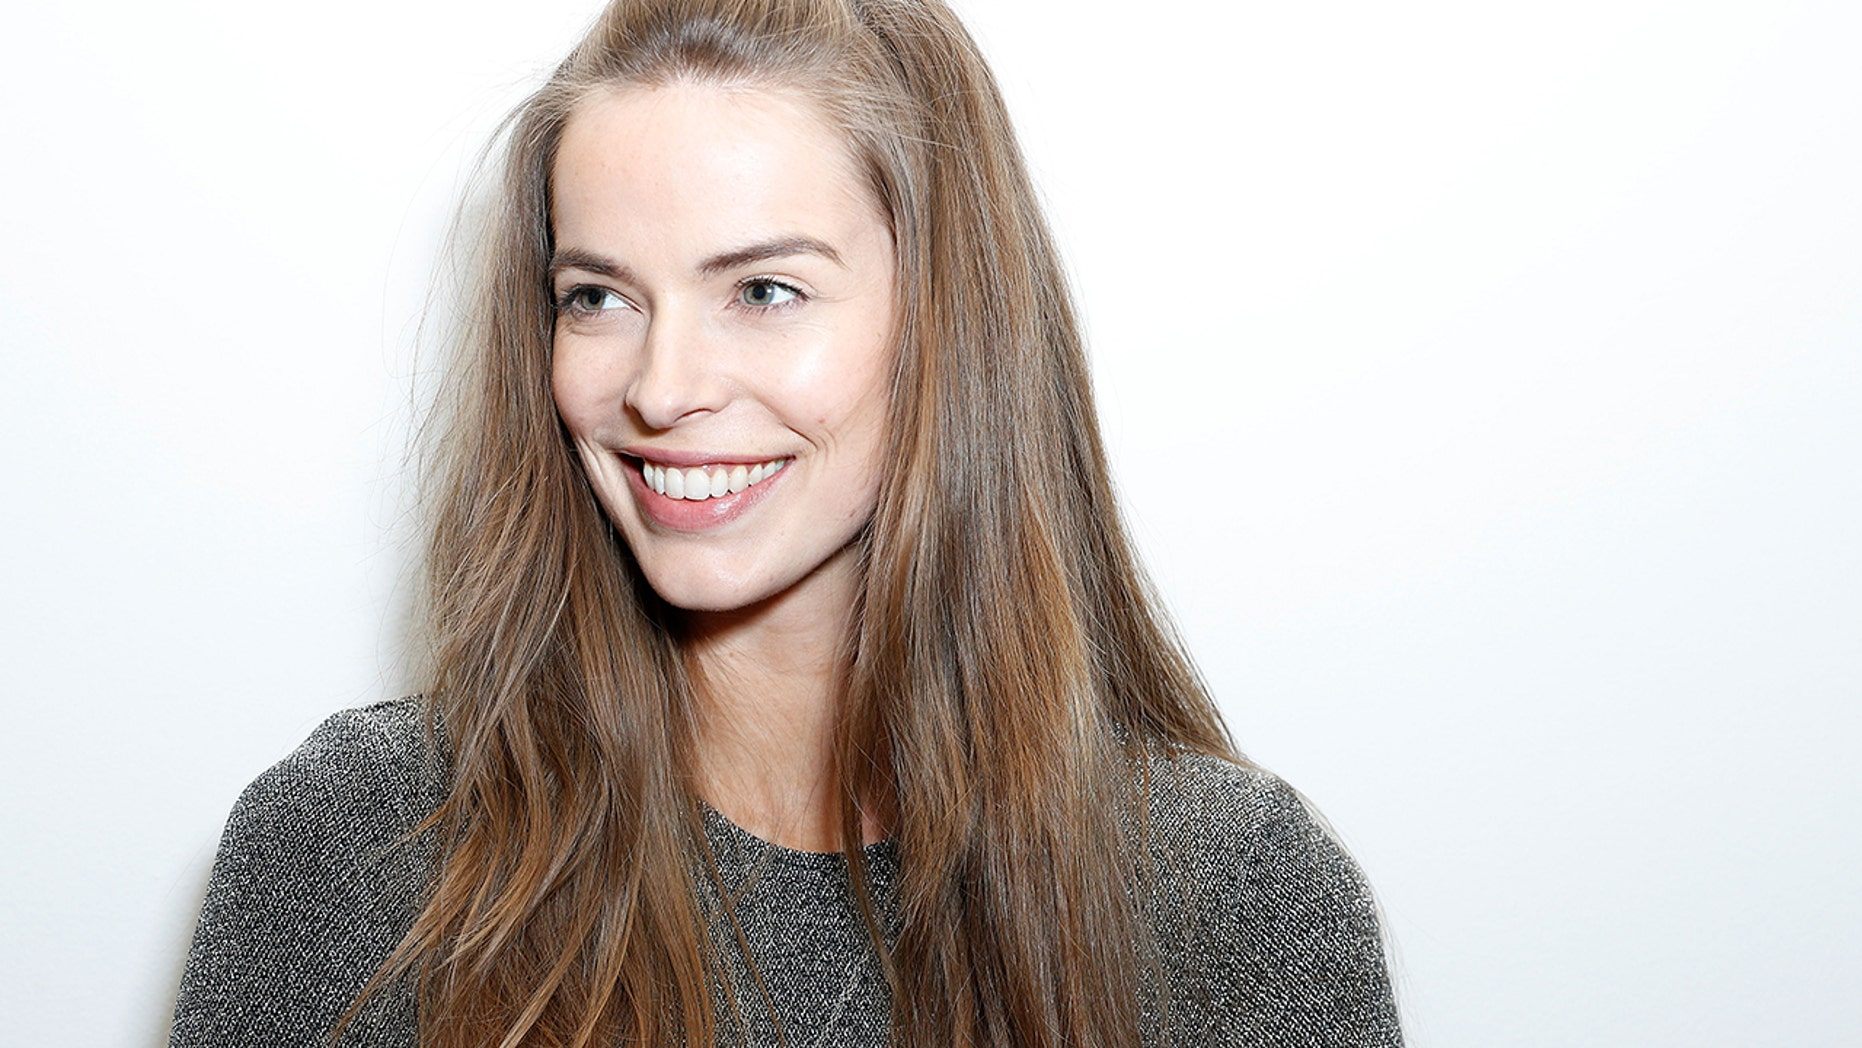 Model Robyn Lawley is calling for a boycott of Victoria's Secret over their lack of model diversity.